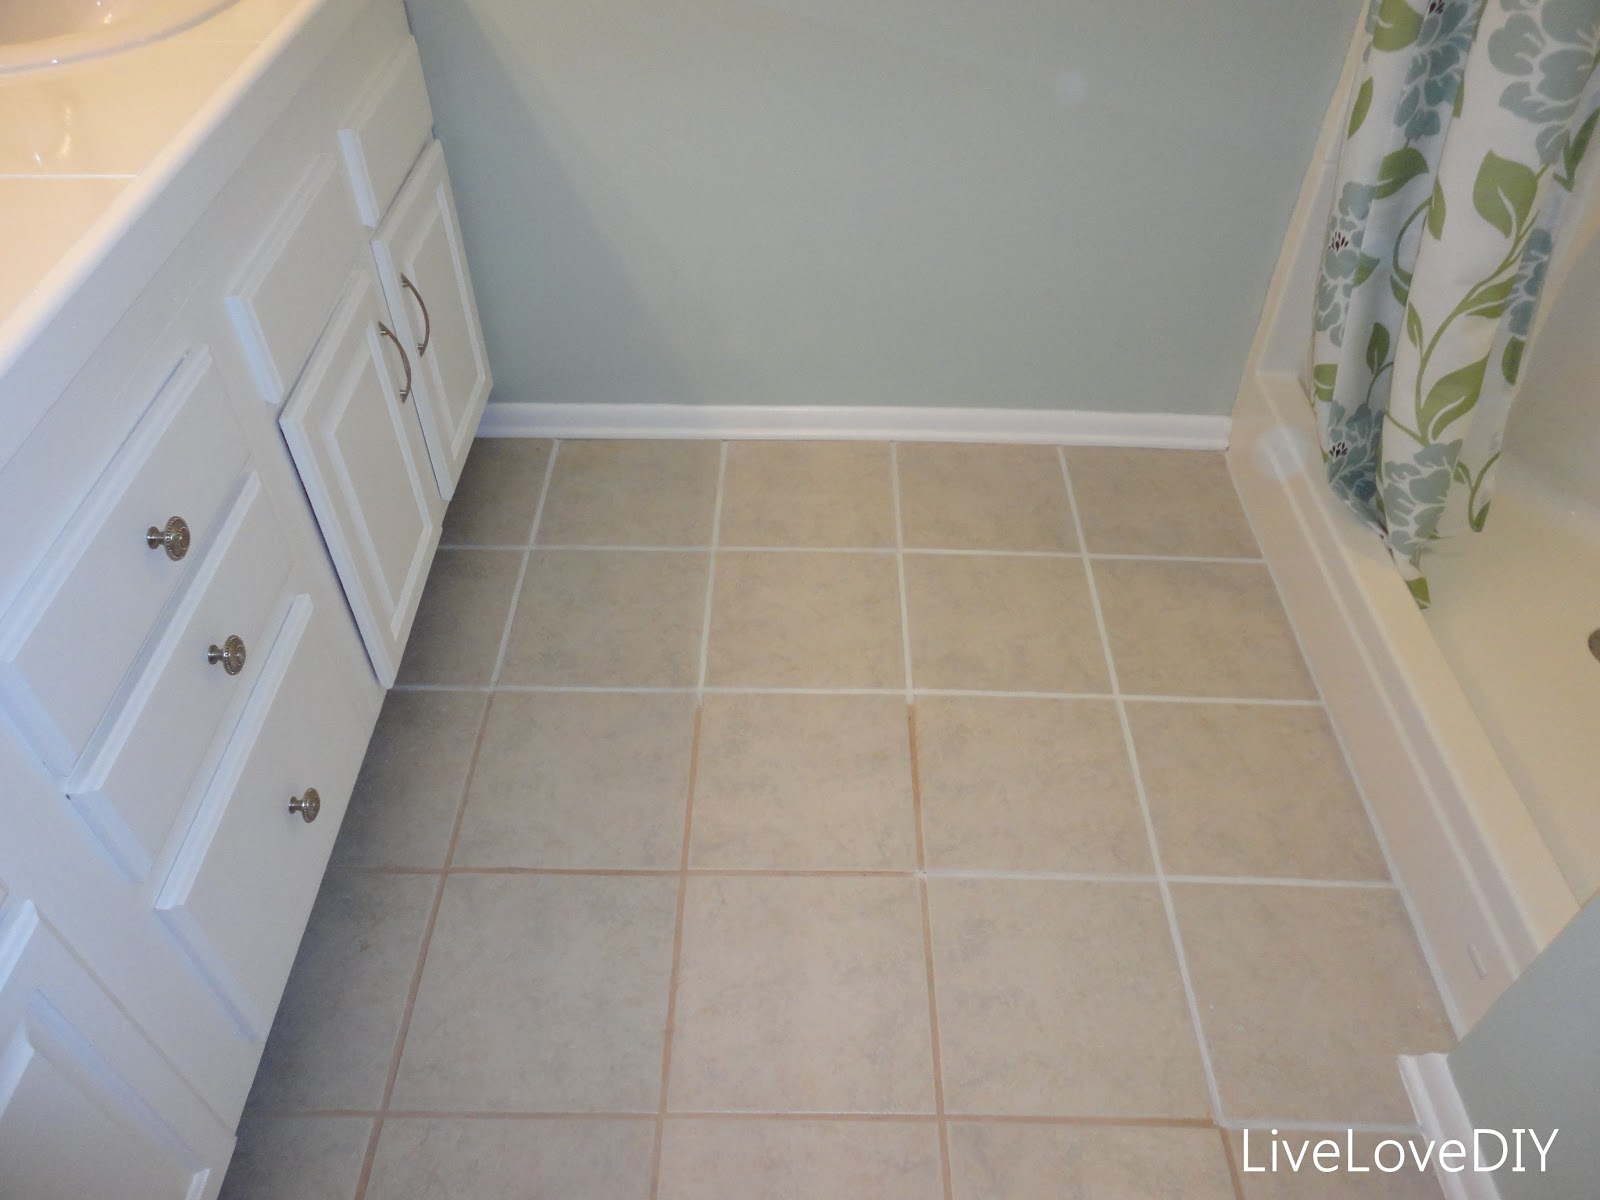 Livelovediy how to restore dirty tile grout to dailygadgetfo Choice Image